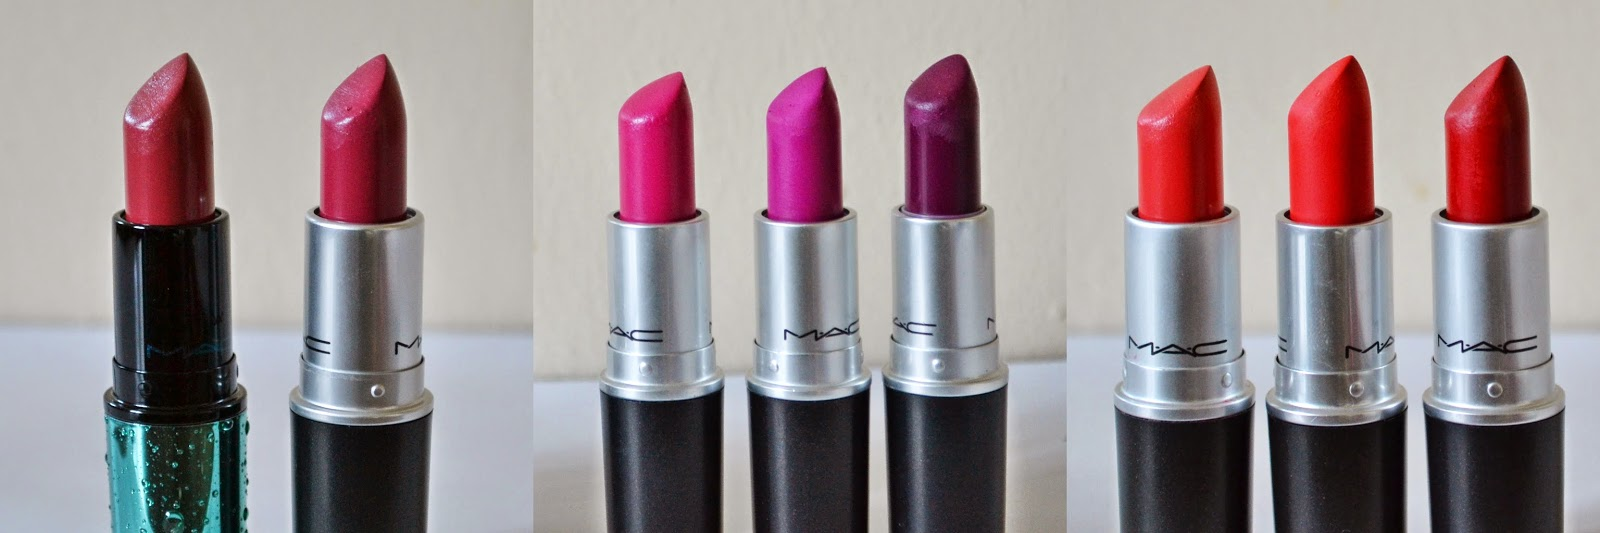 MAC Lipstick Collection #LipWeek - Aspiring Londoner